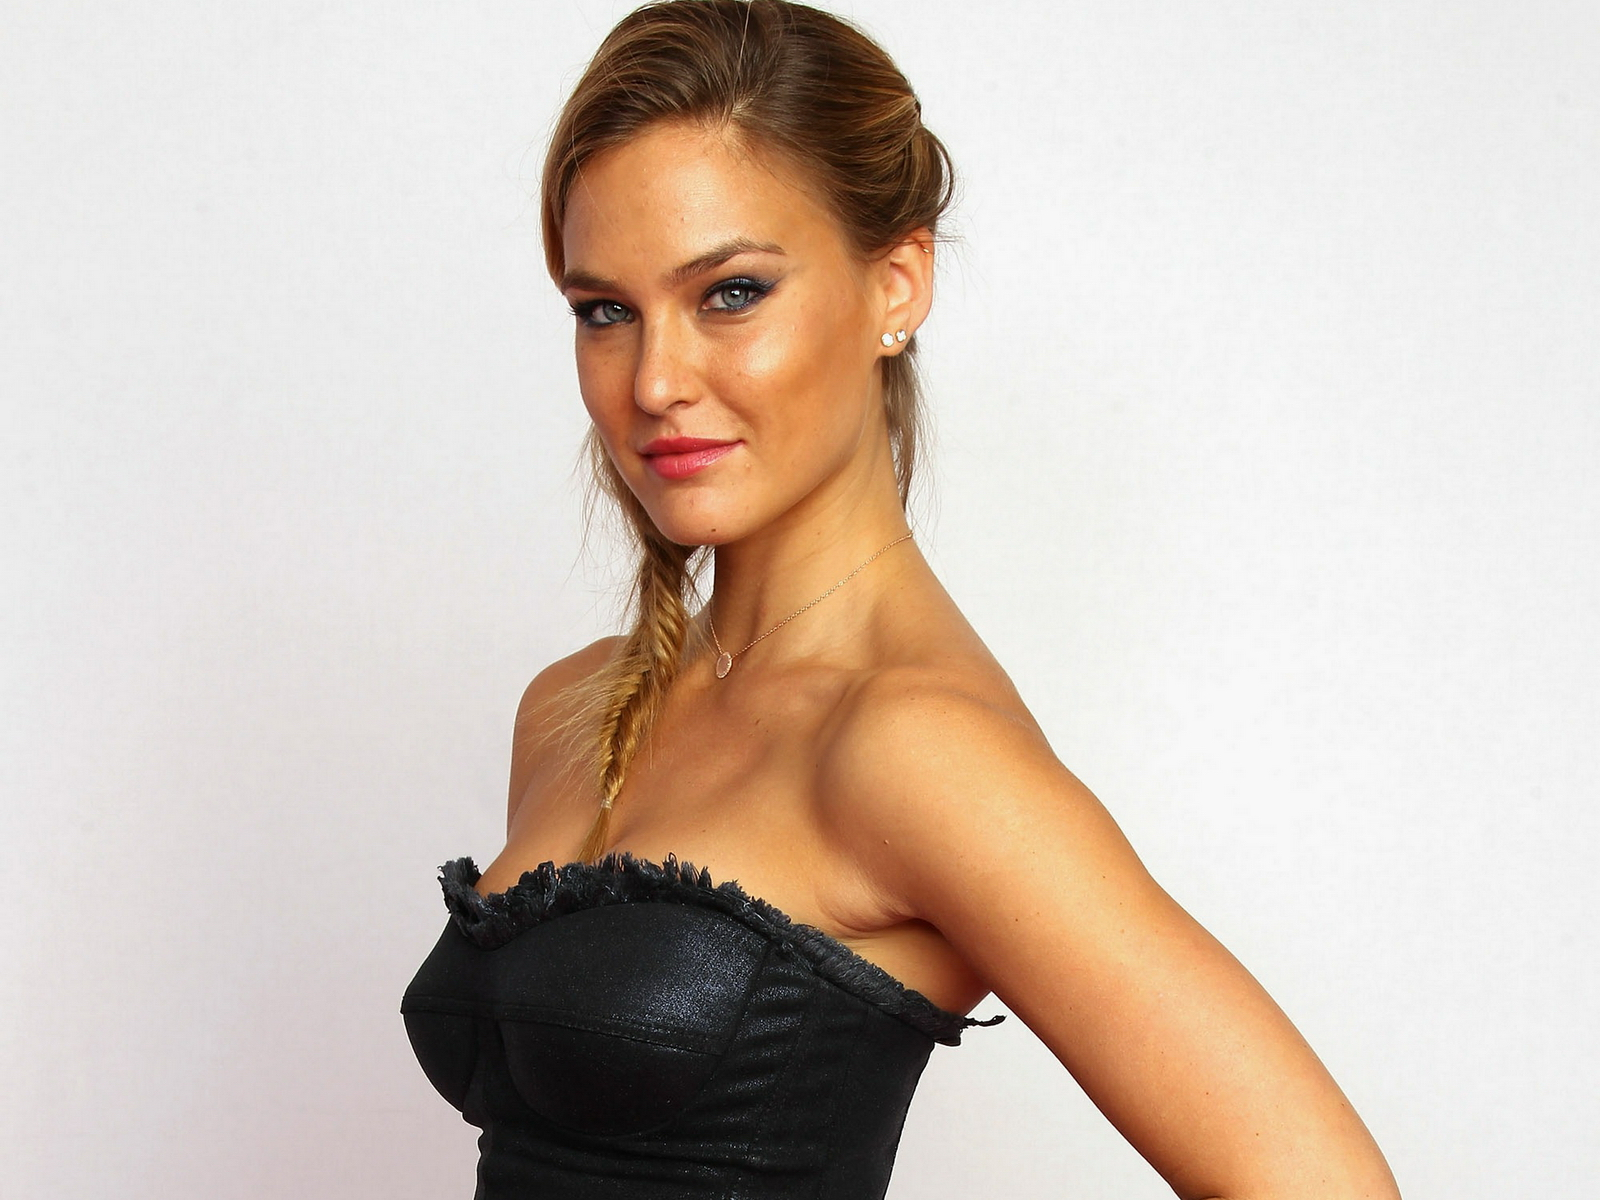 All Wallpapers: Bar Refaeli Hot Model Wallpapers 2013 бар рафаэли